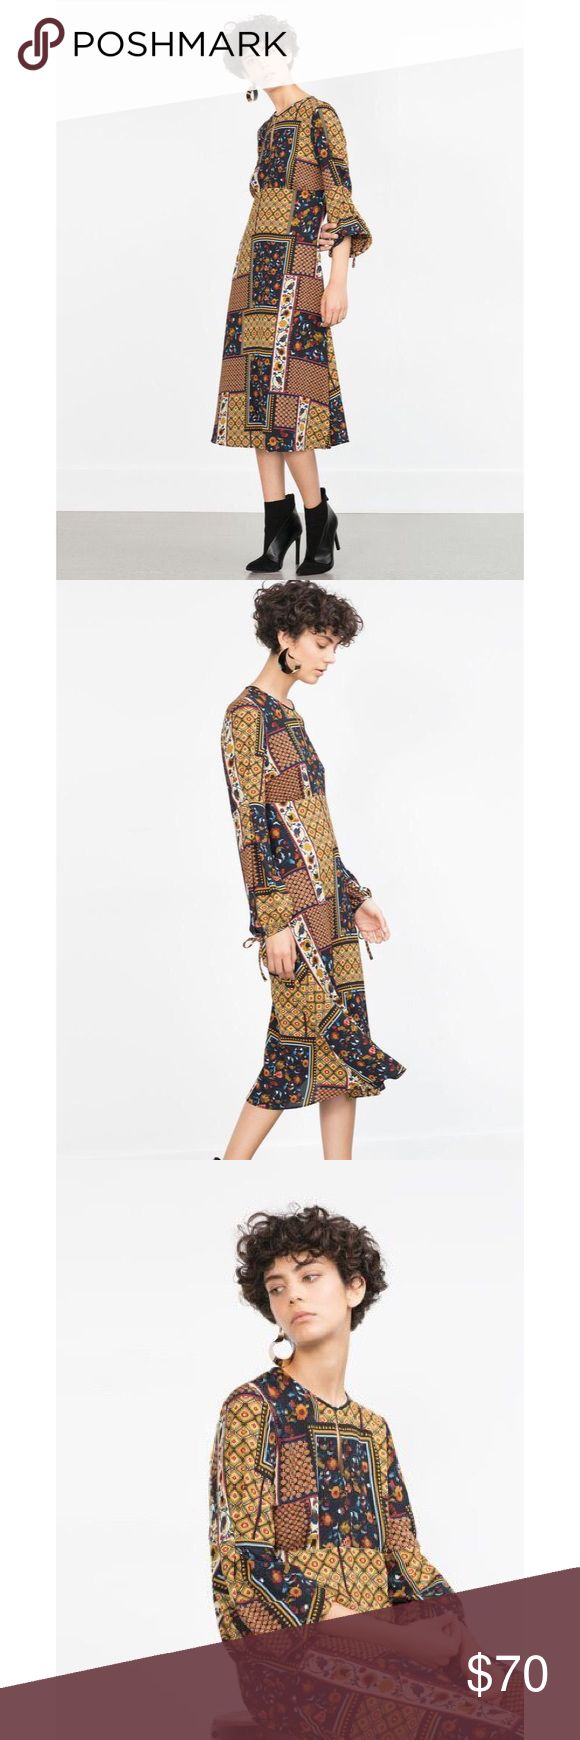 ZARA Long Patchwork Dress EUC Sz sm 🍁🔥 ZARA Long Patchwork Dress EUC Sz sm 🍁🔥 Patchwork prints are key to working the boho trend this season. Zara's dress features a round neck with keyhole detail, fluted sleeves and finishes mid-calf. Team with large abstract earrings for a modern twist. This dress is stunning. Zara Dresses